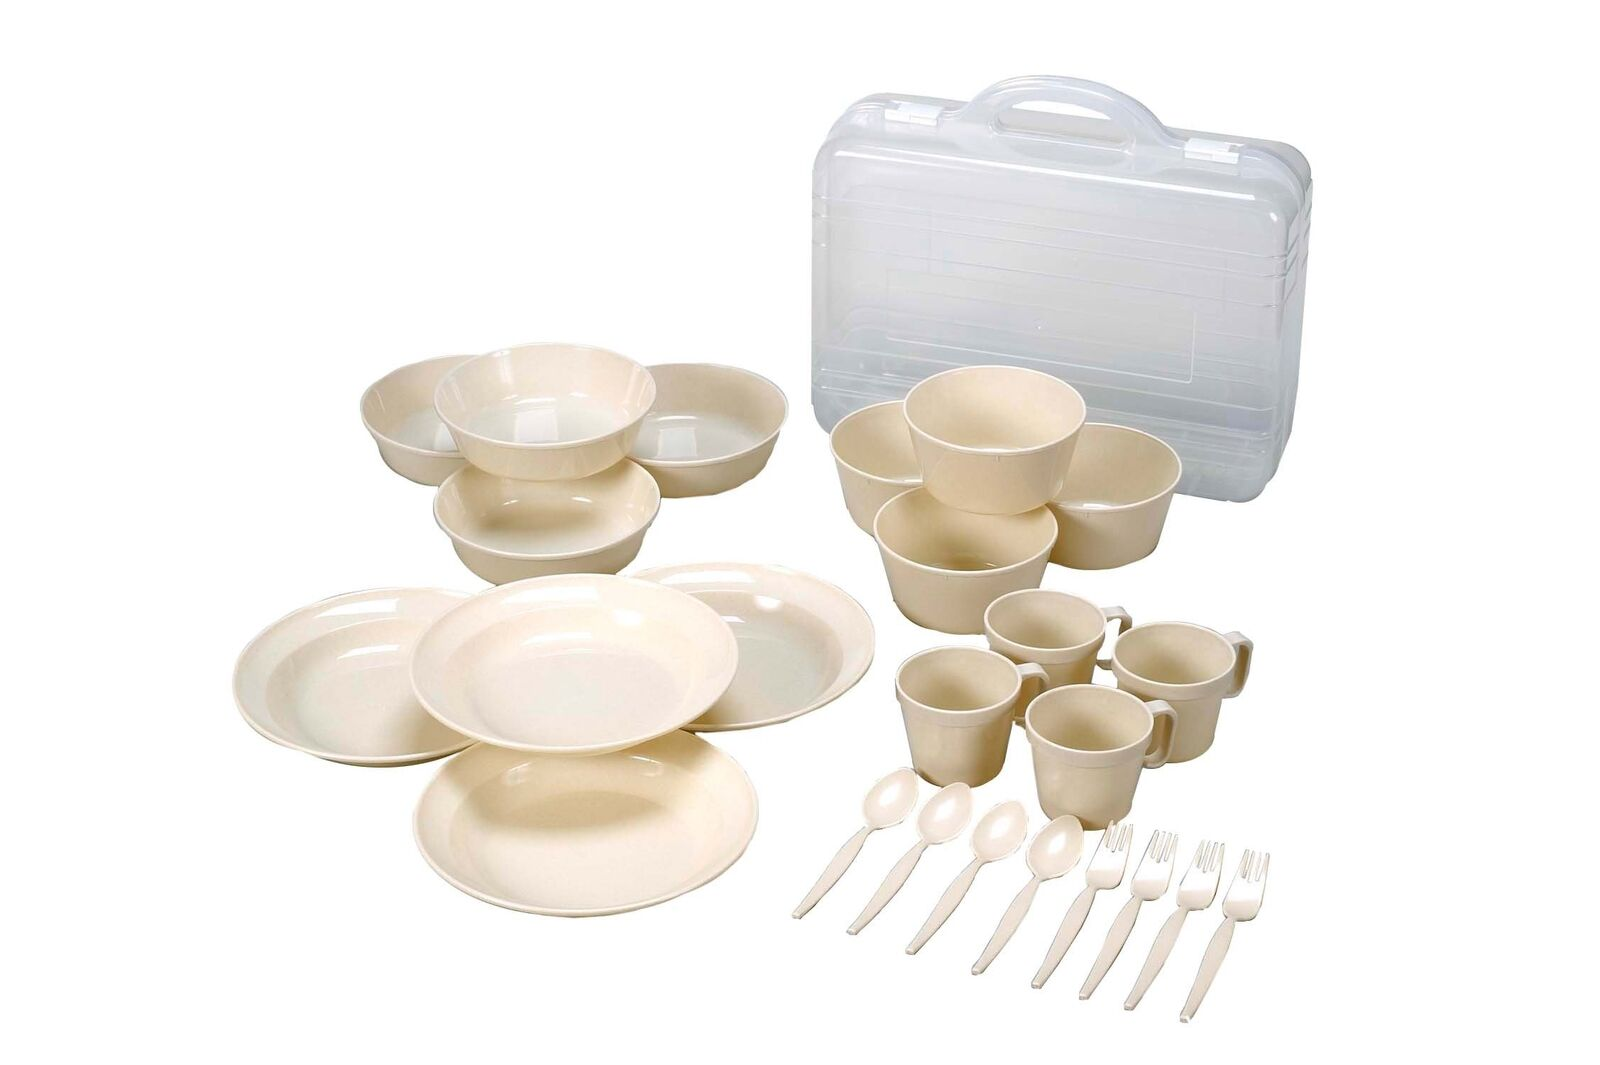 Captain Captain Captain Stag Camping dishware set Regular Time M-1201 From Japan 094094